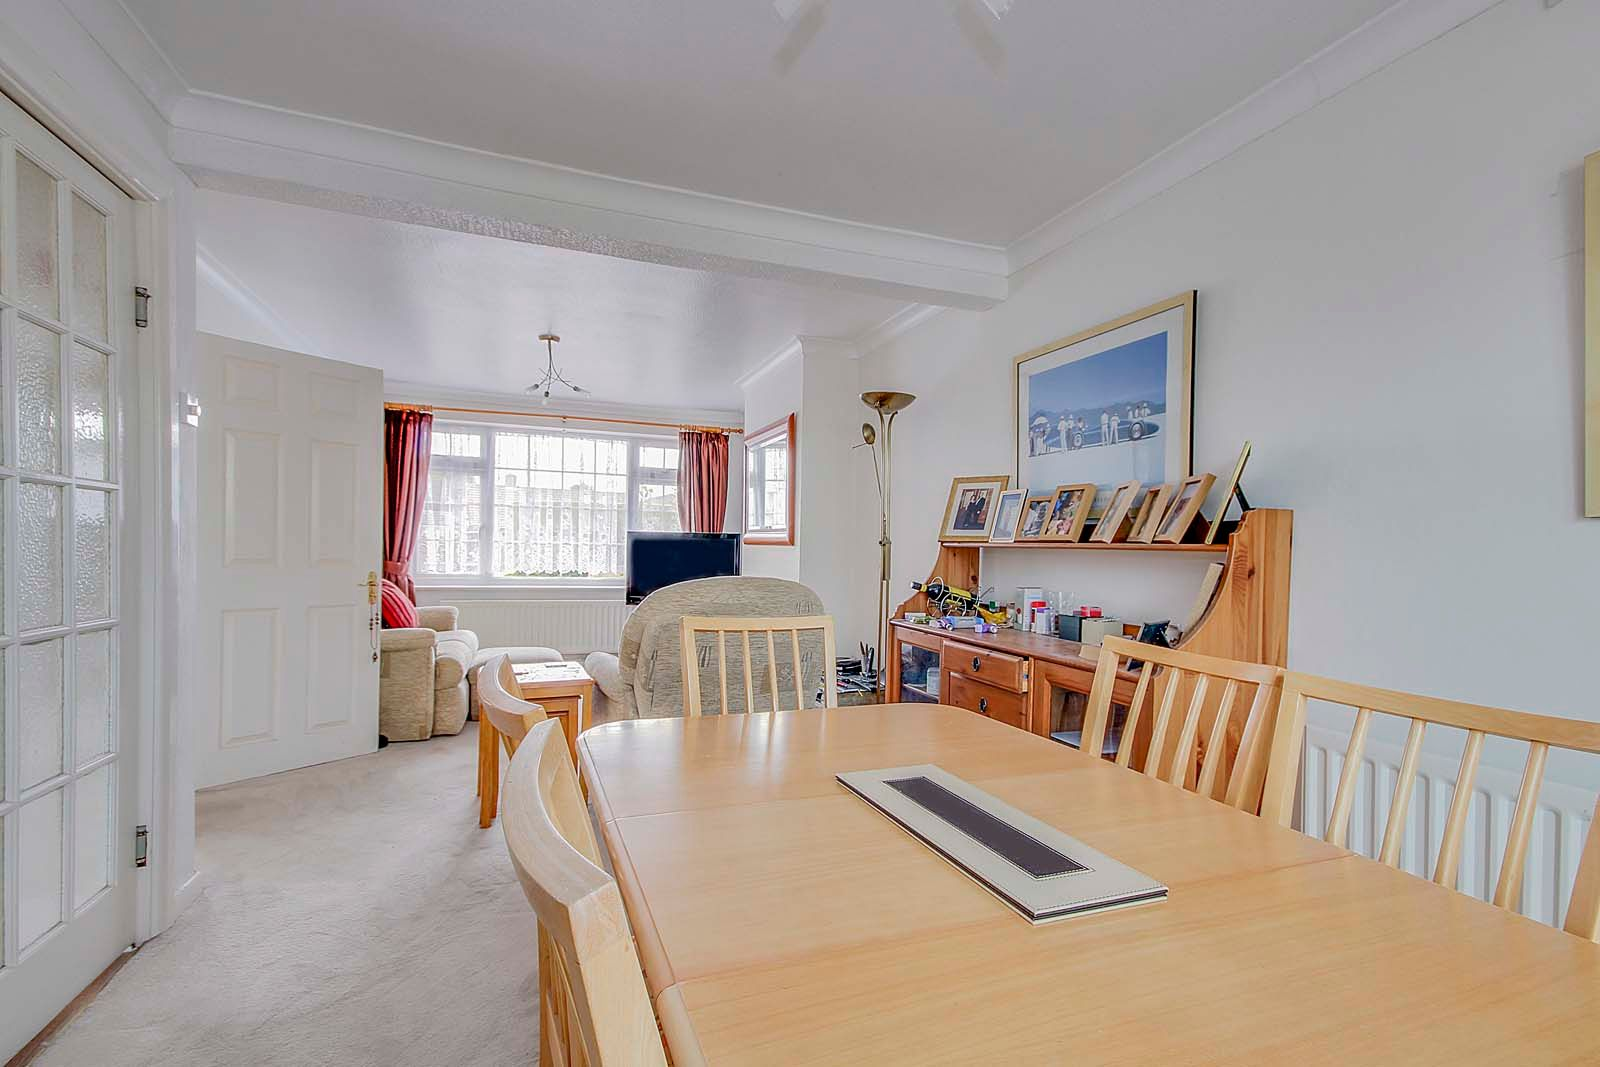 3 bed house for sale in Old Worthing Road  - Property Image 6